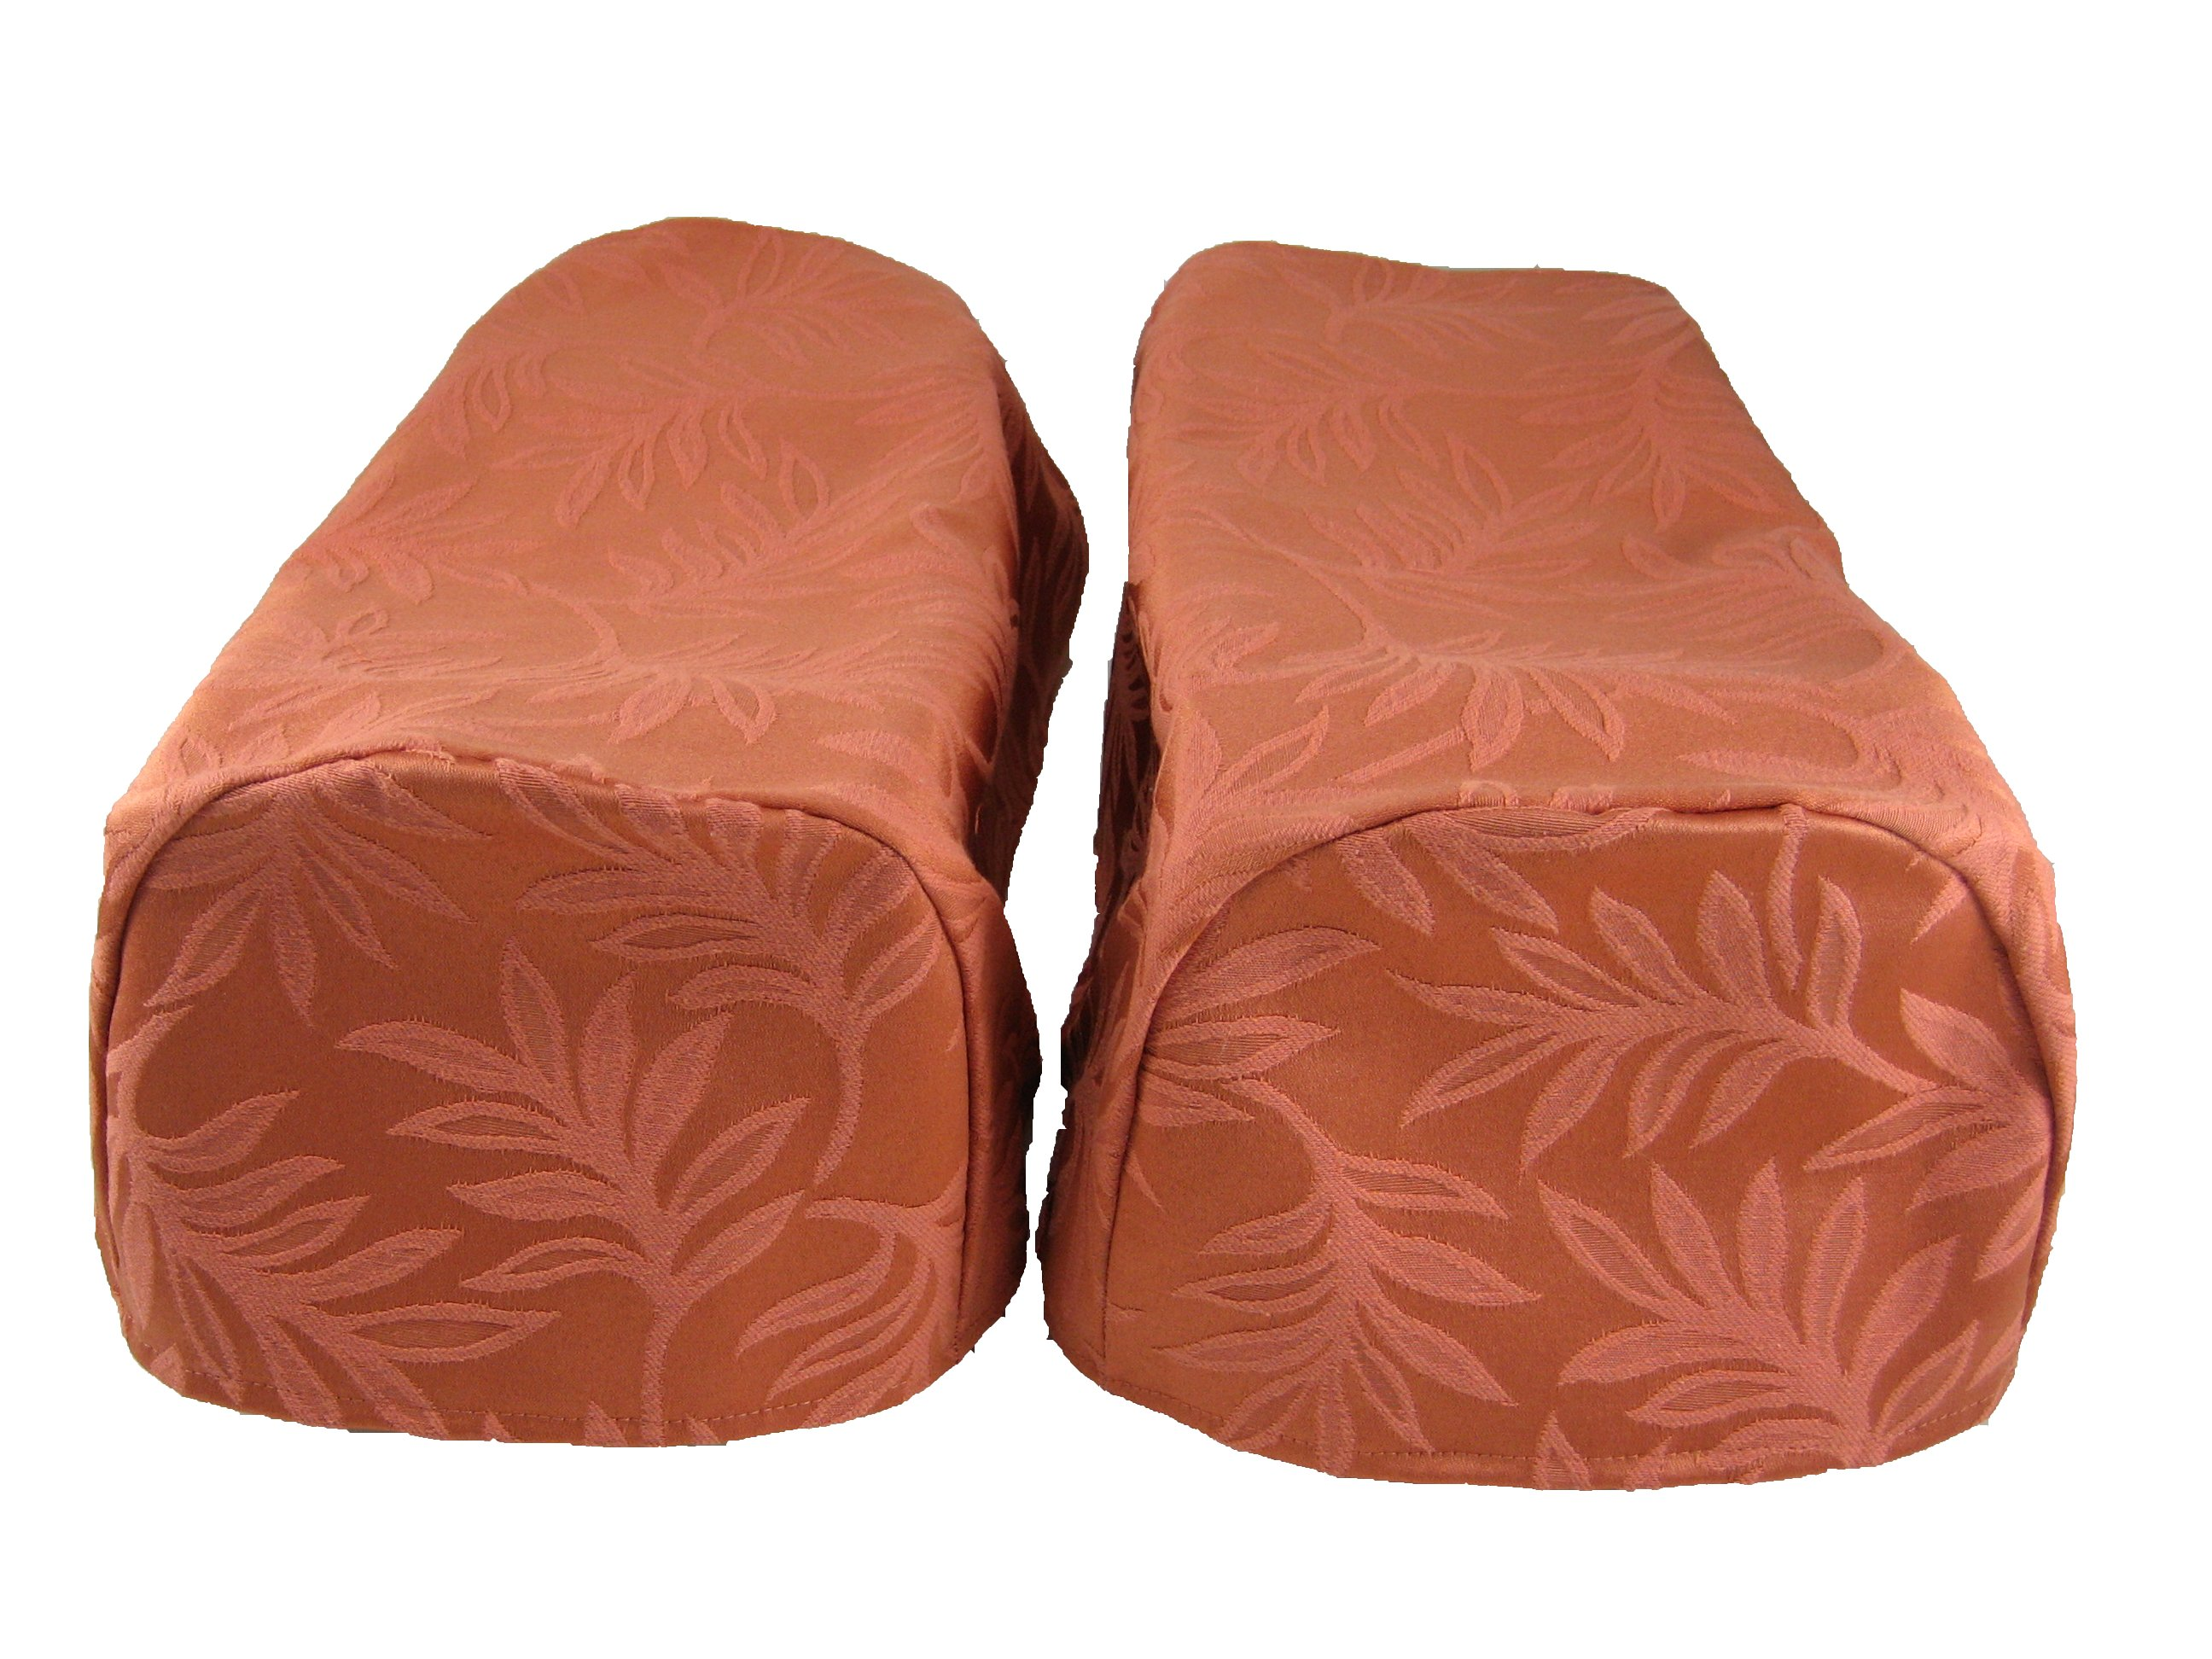 chair arm protectors pattern office chairs home depot pair of decorative caps settee covers